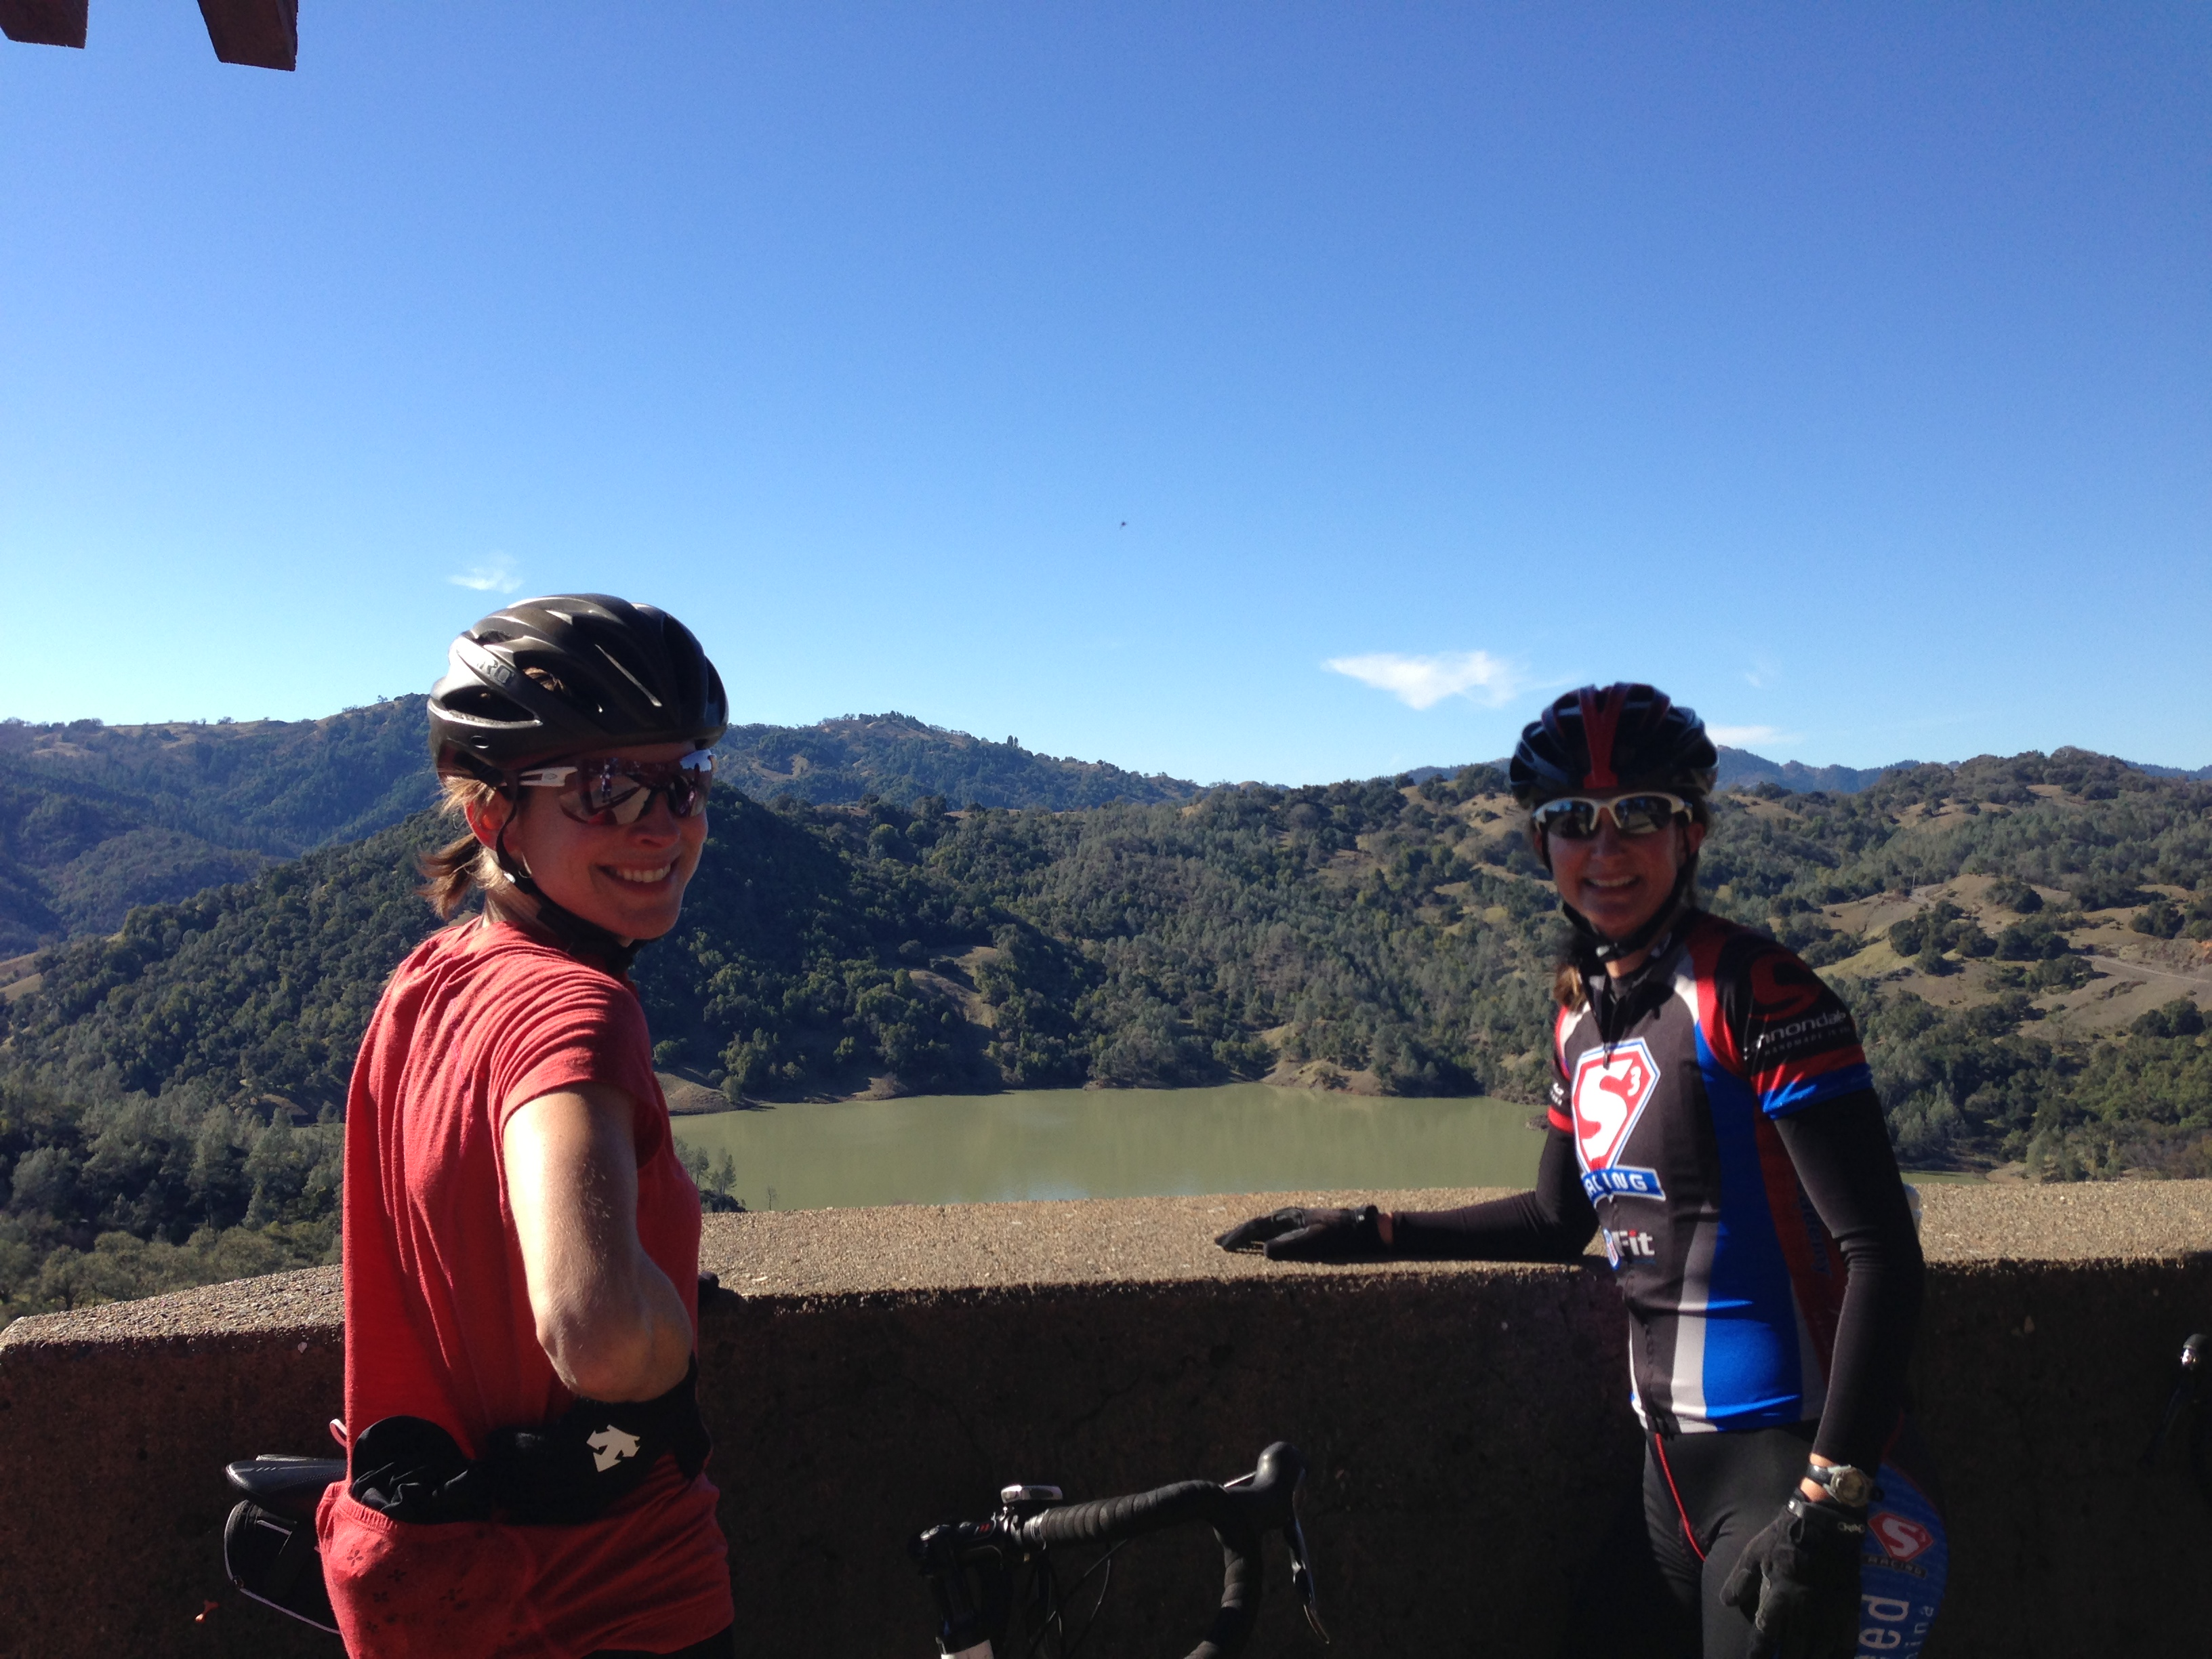 women cycling campers at cycling camp in California